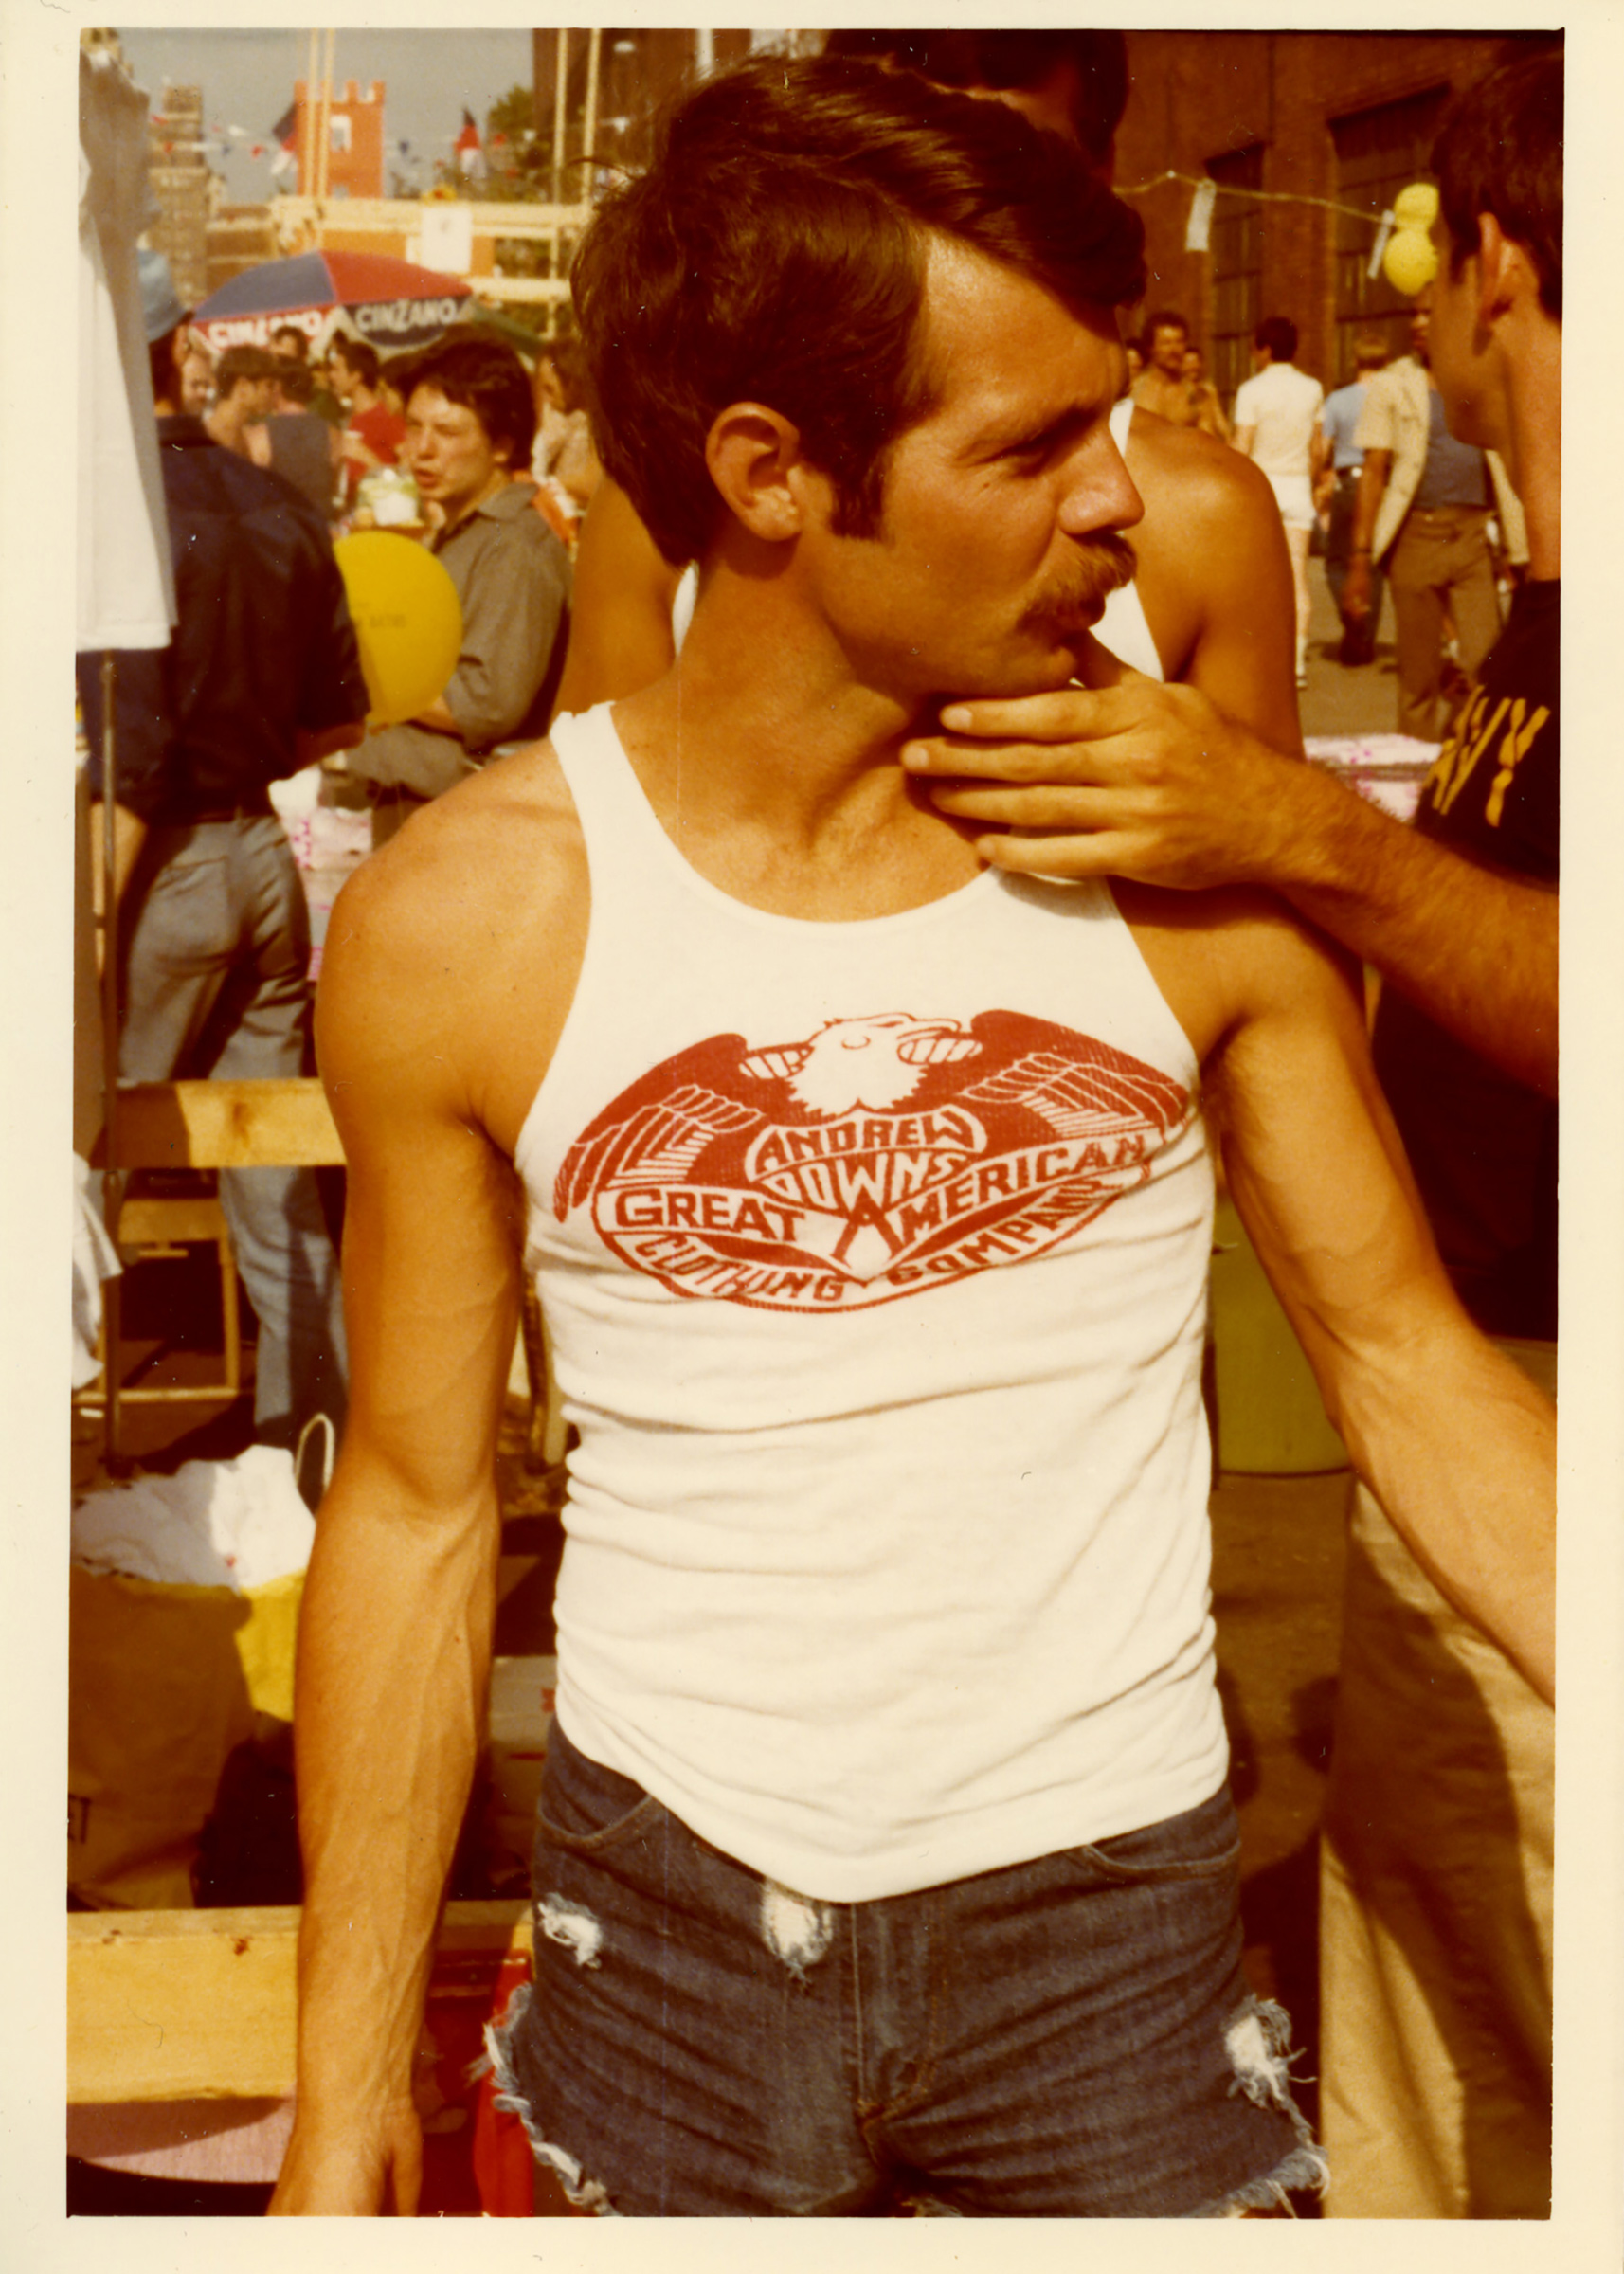 A man at the Pride Parade in 1977